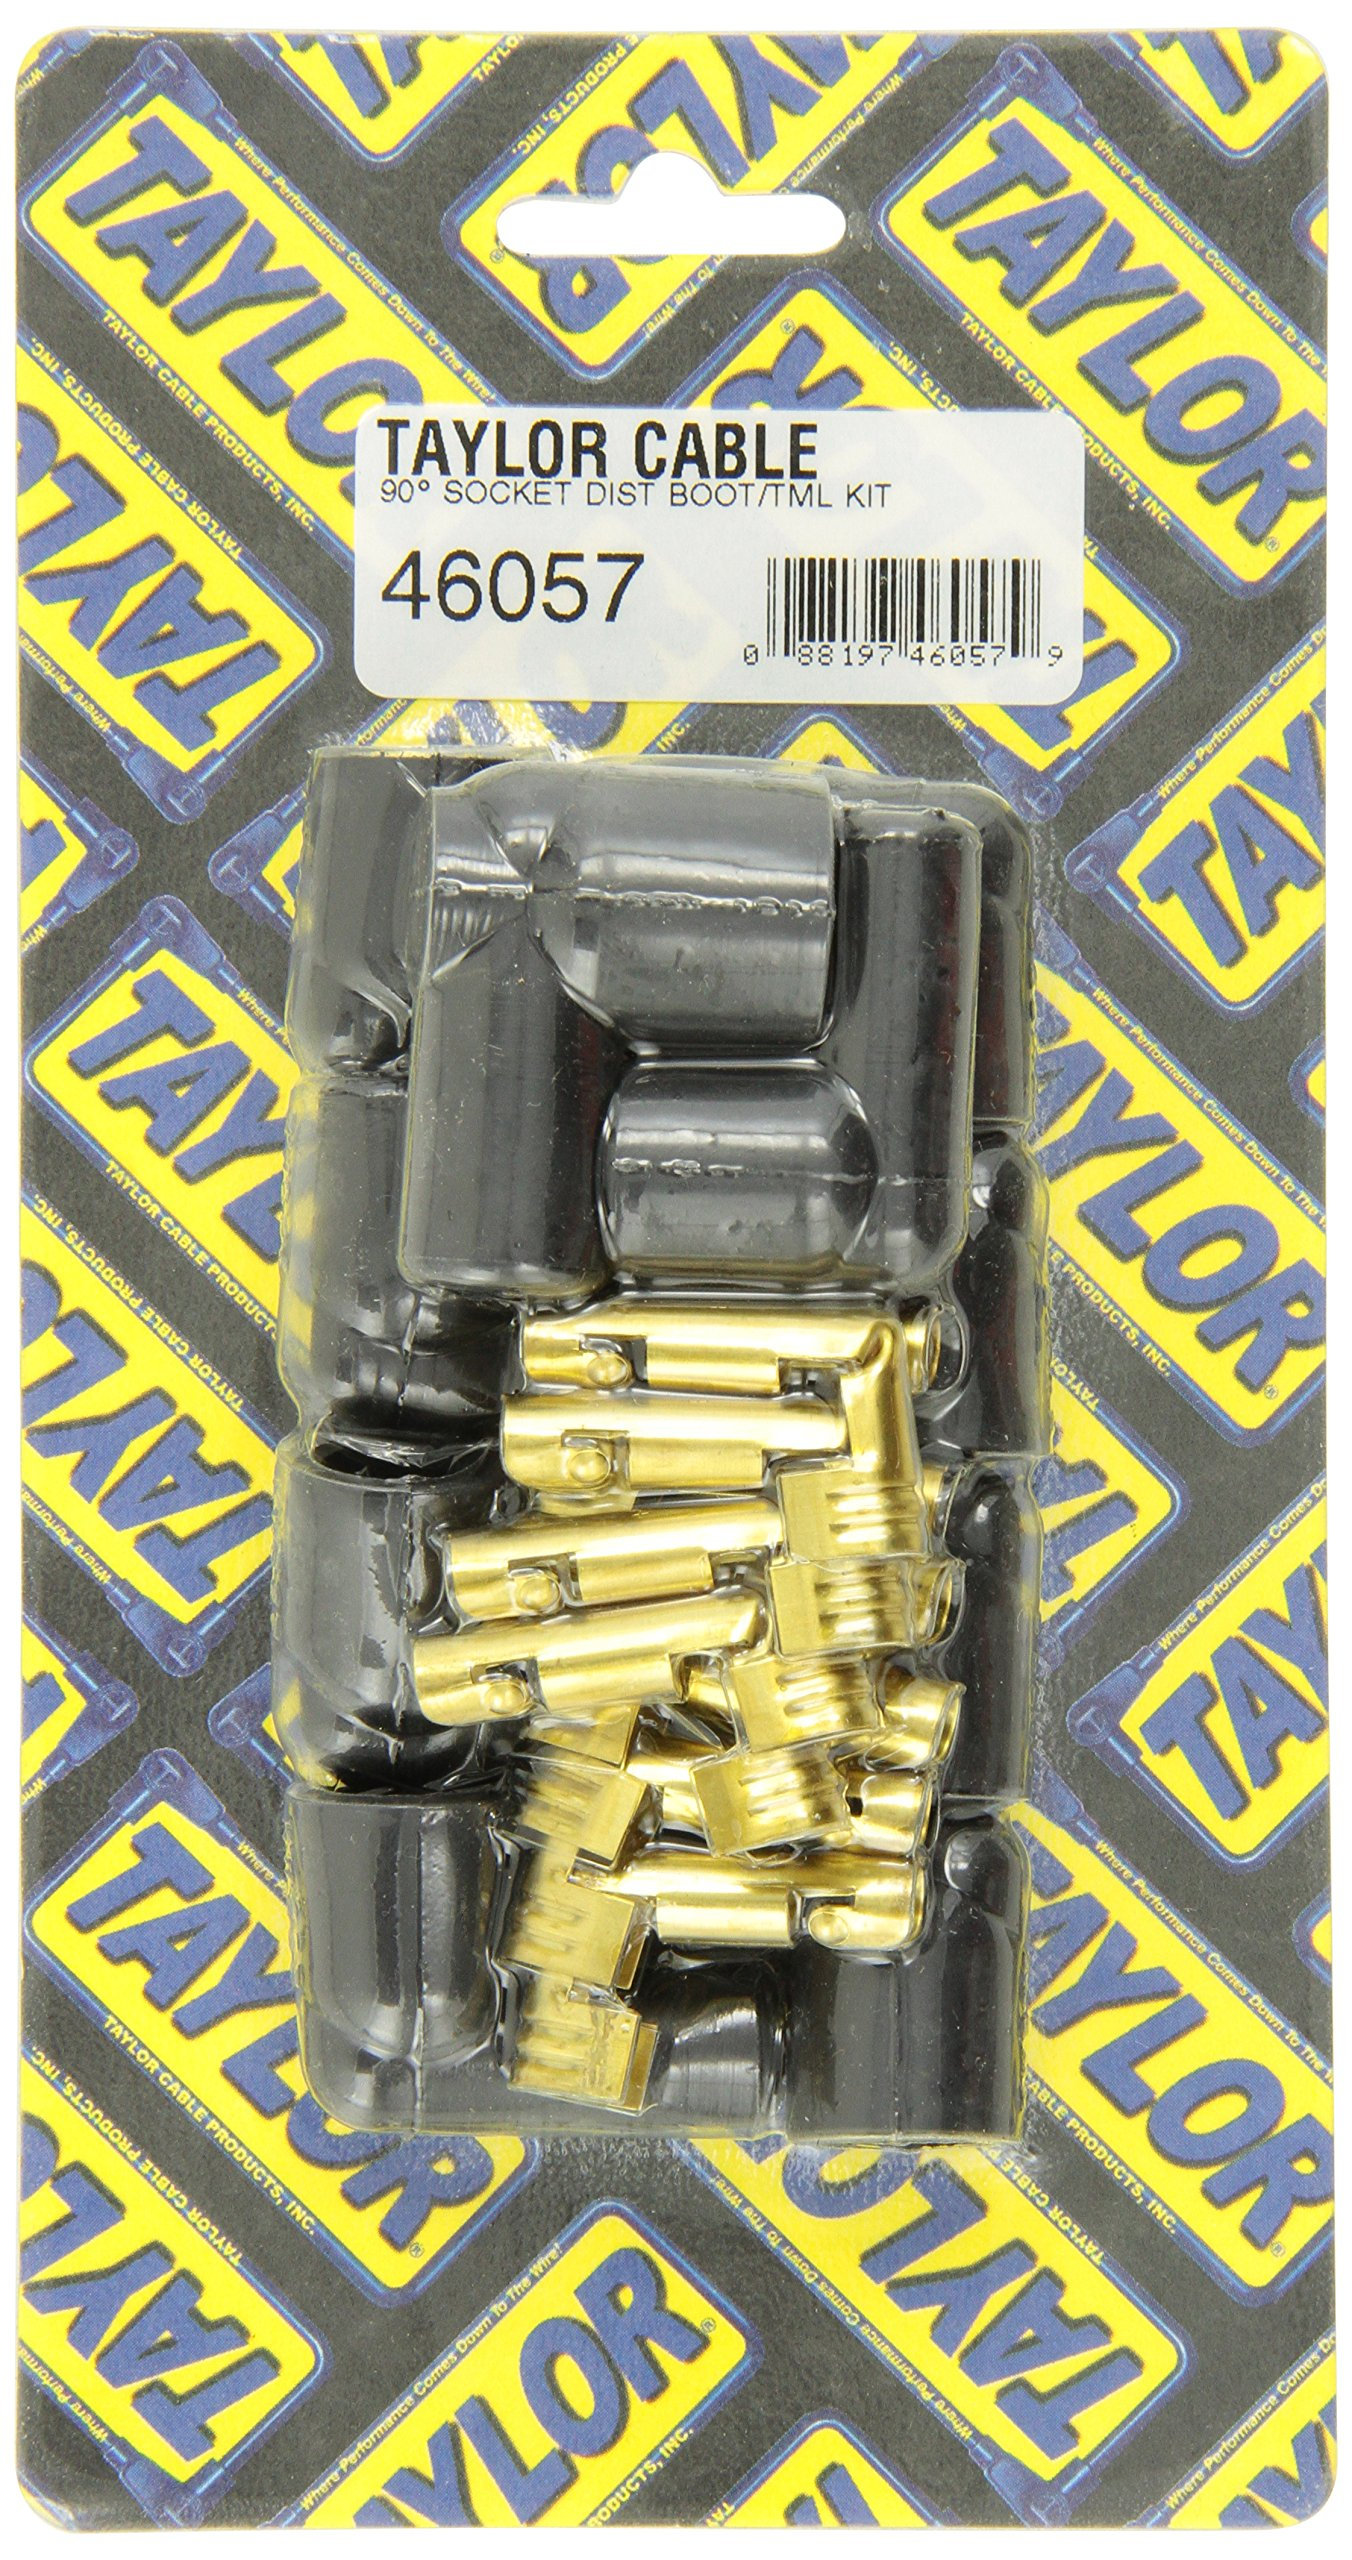 Taylor Cable 46057 Socket Style 90-Degree Distributor and Coil Spark Plug Boot and Terminal Kit - Pack of 10